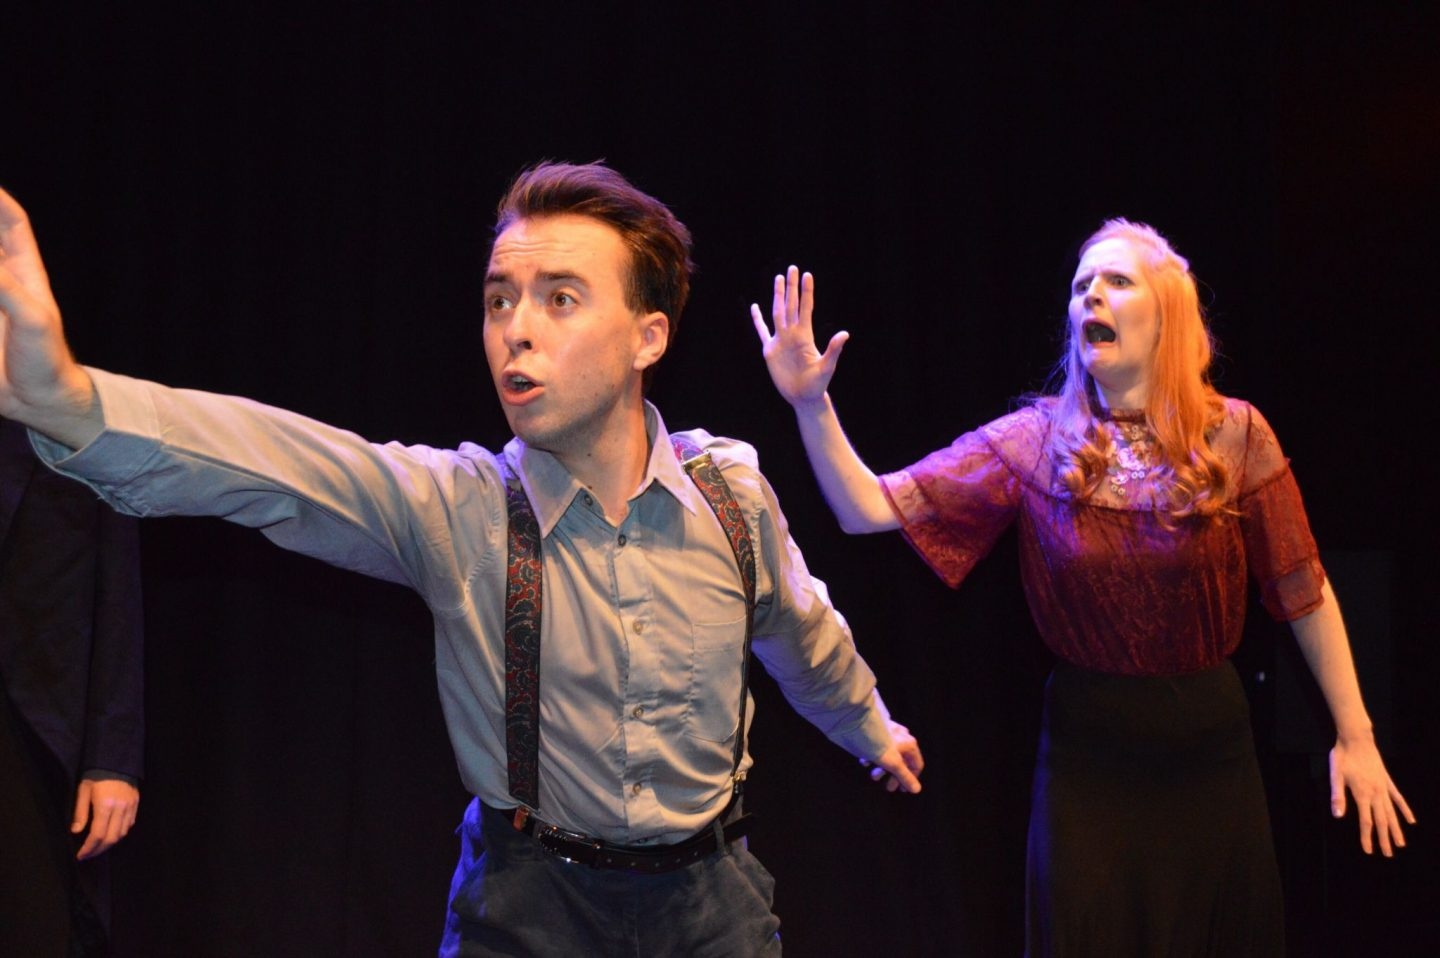 Timpson: The Musical at the Edinburgh Fringe